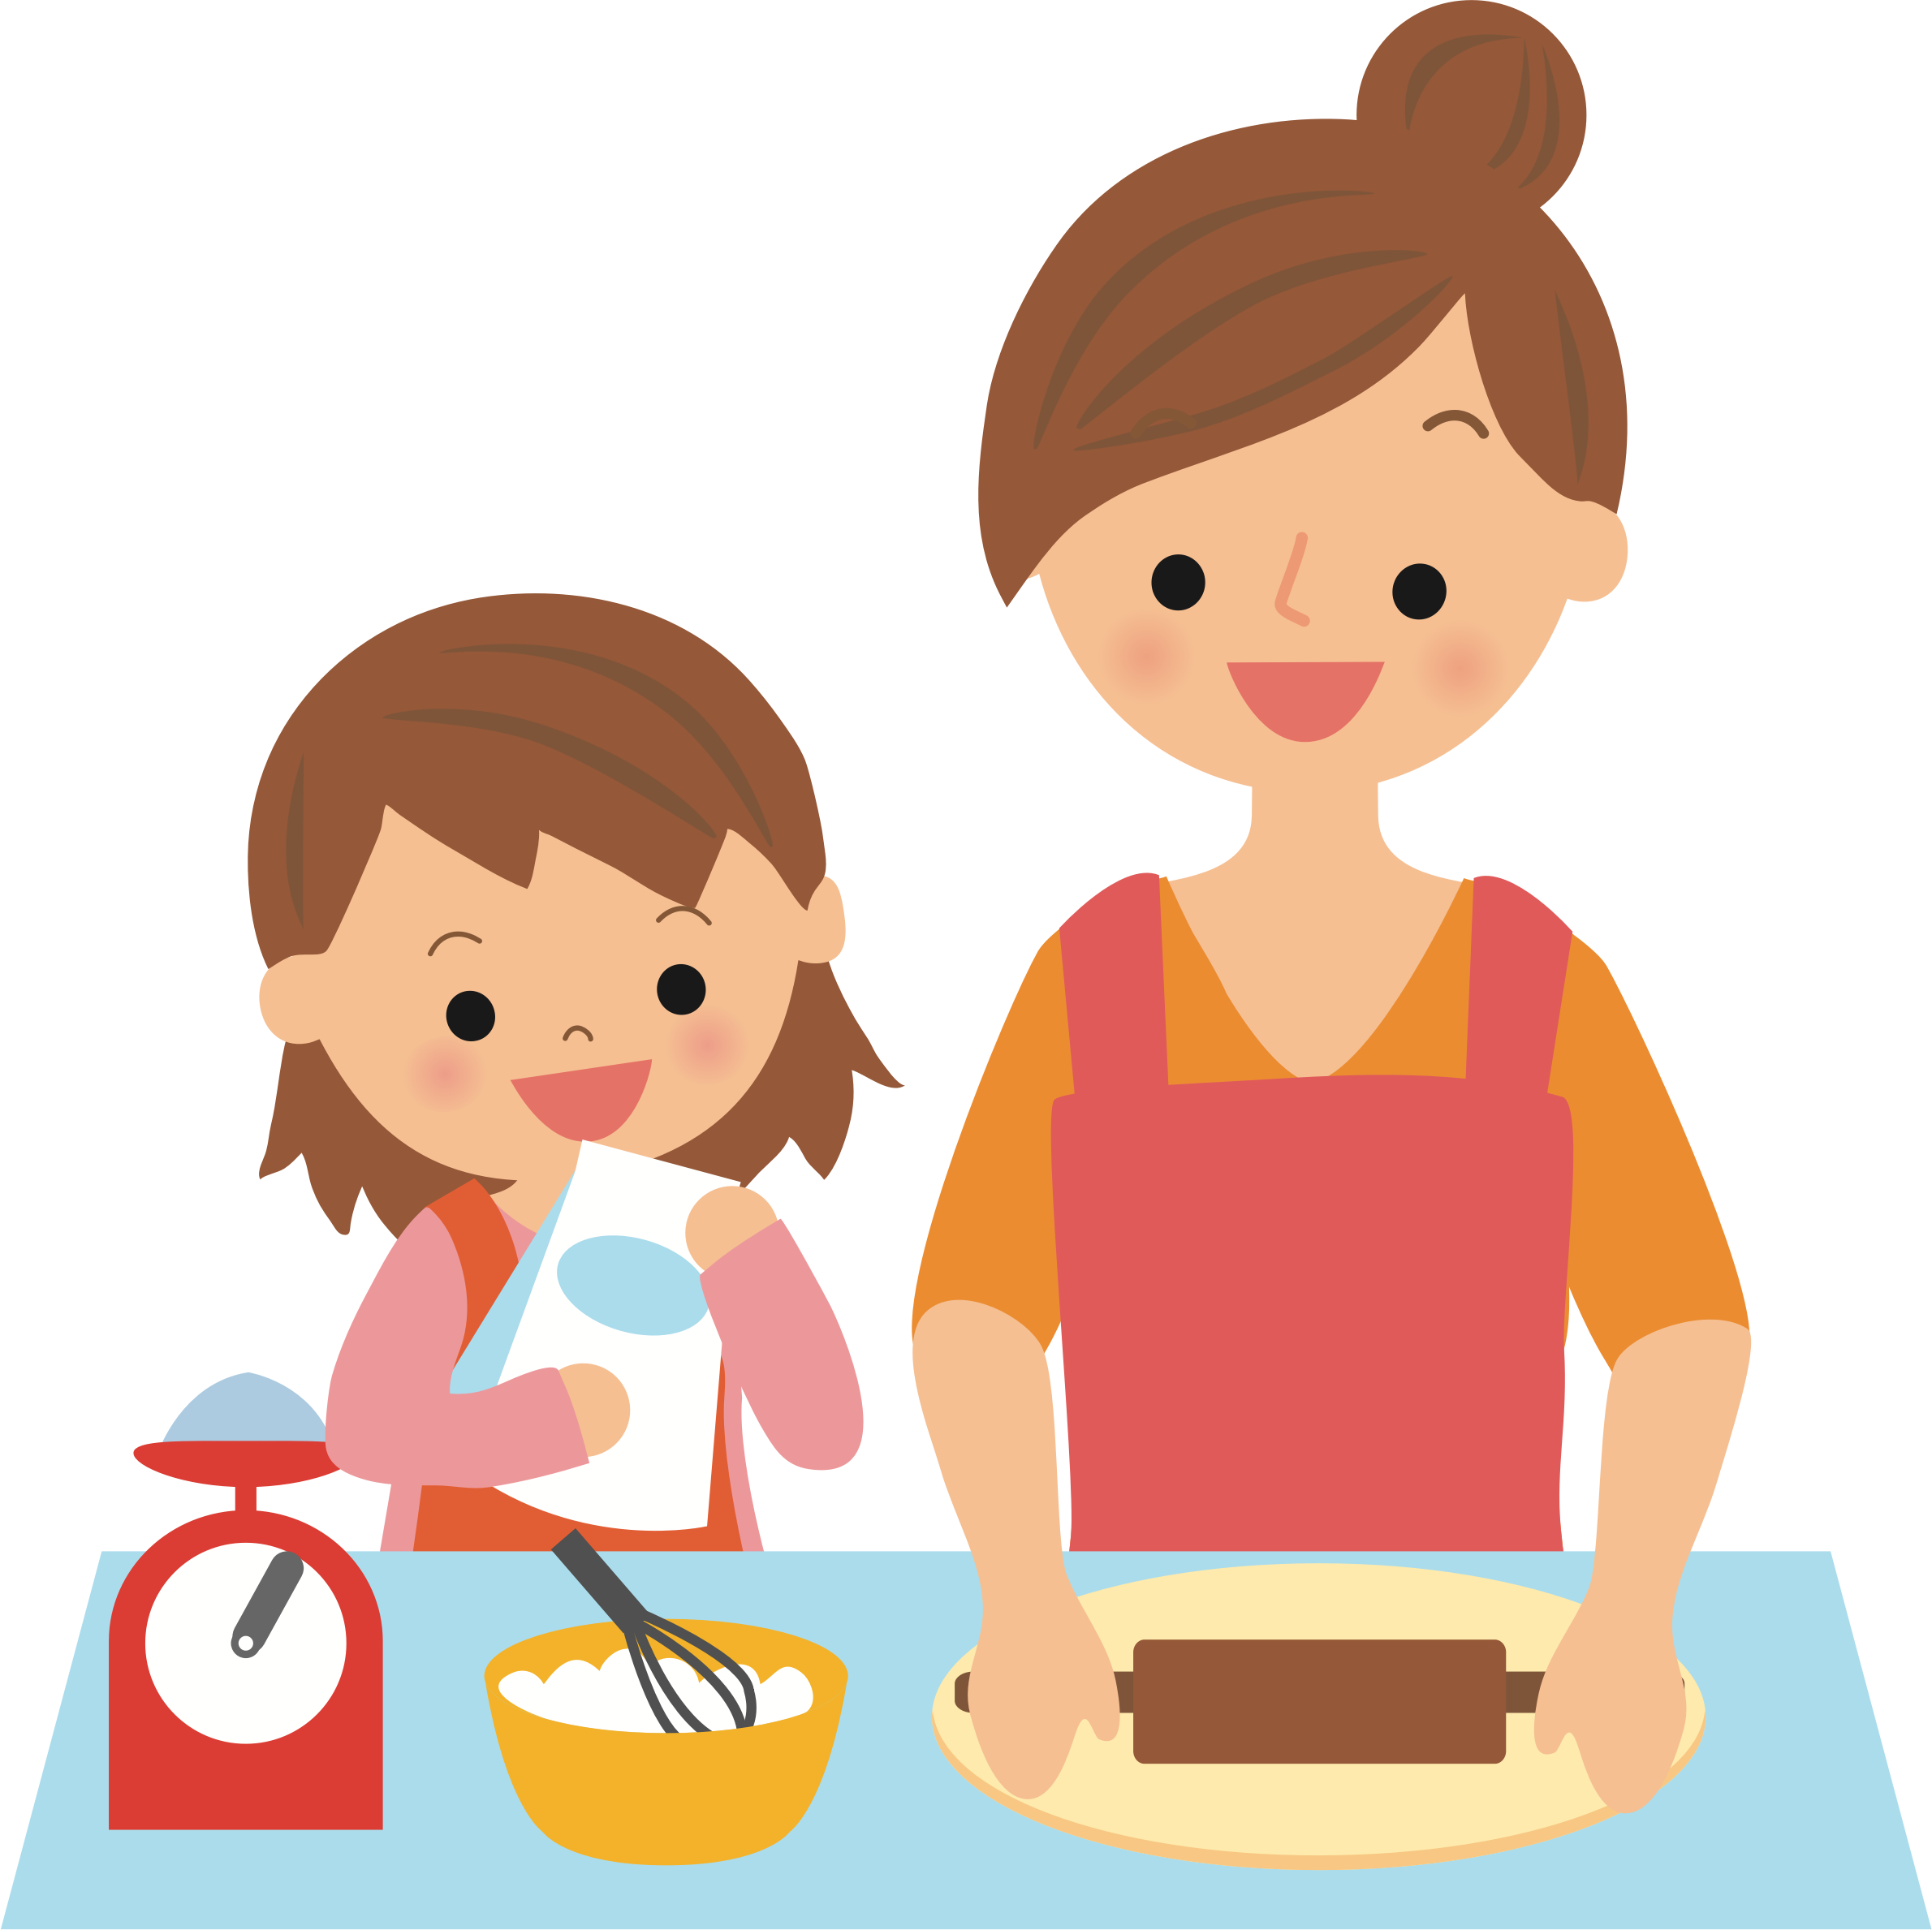 Bake clipart baking cake. For free download and